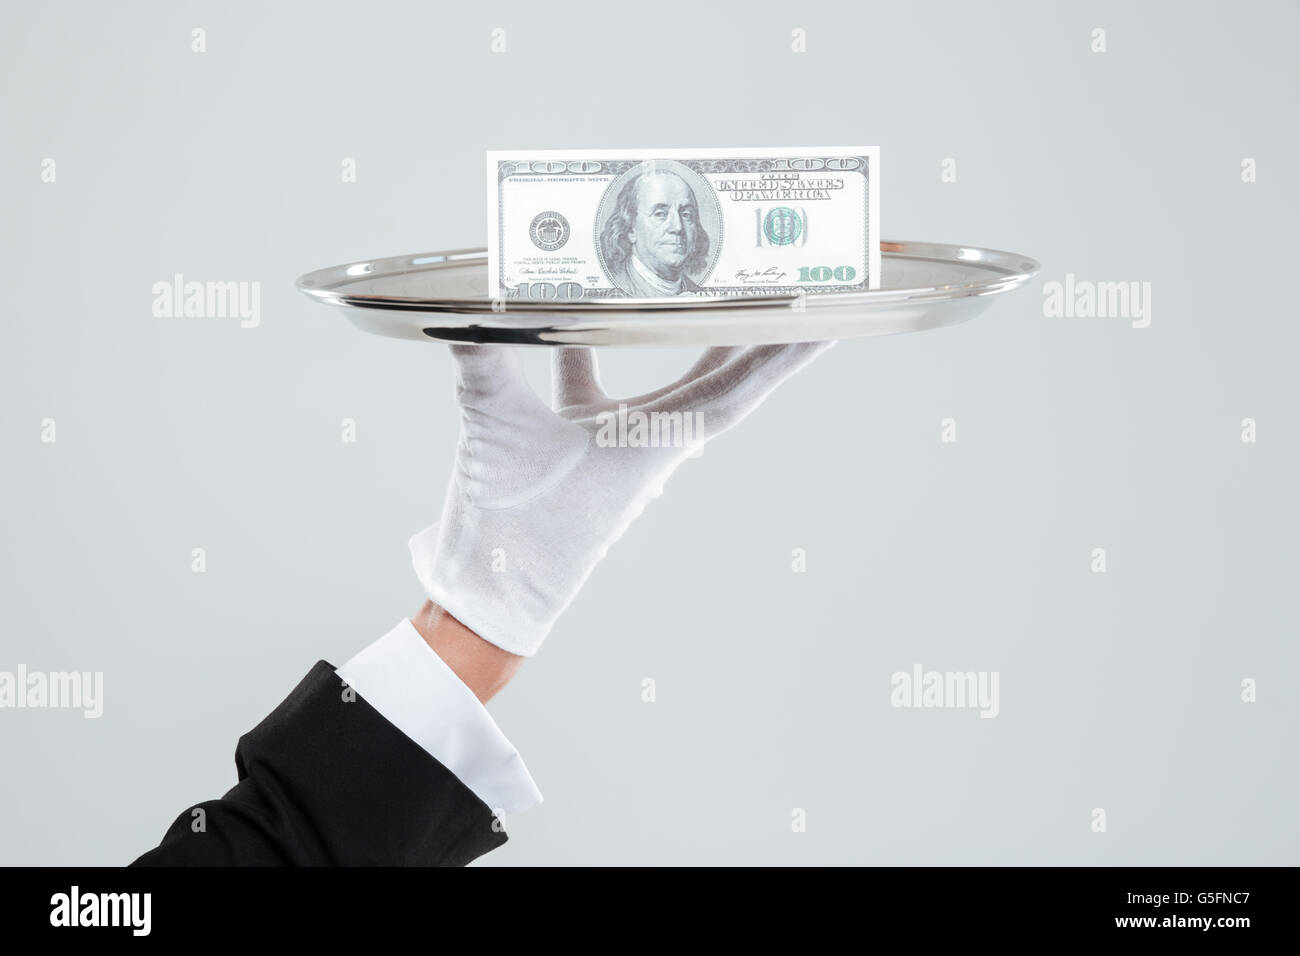 Hand of waiter in white glove holding tray with dollars - Stock Image